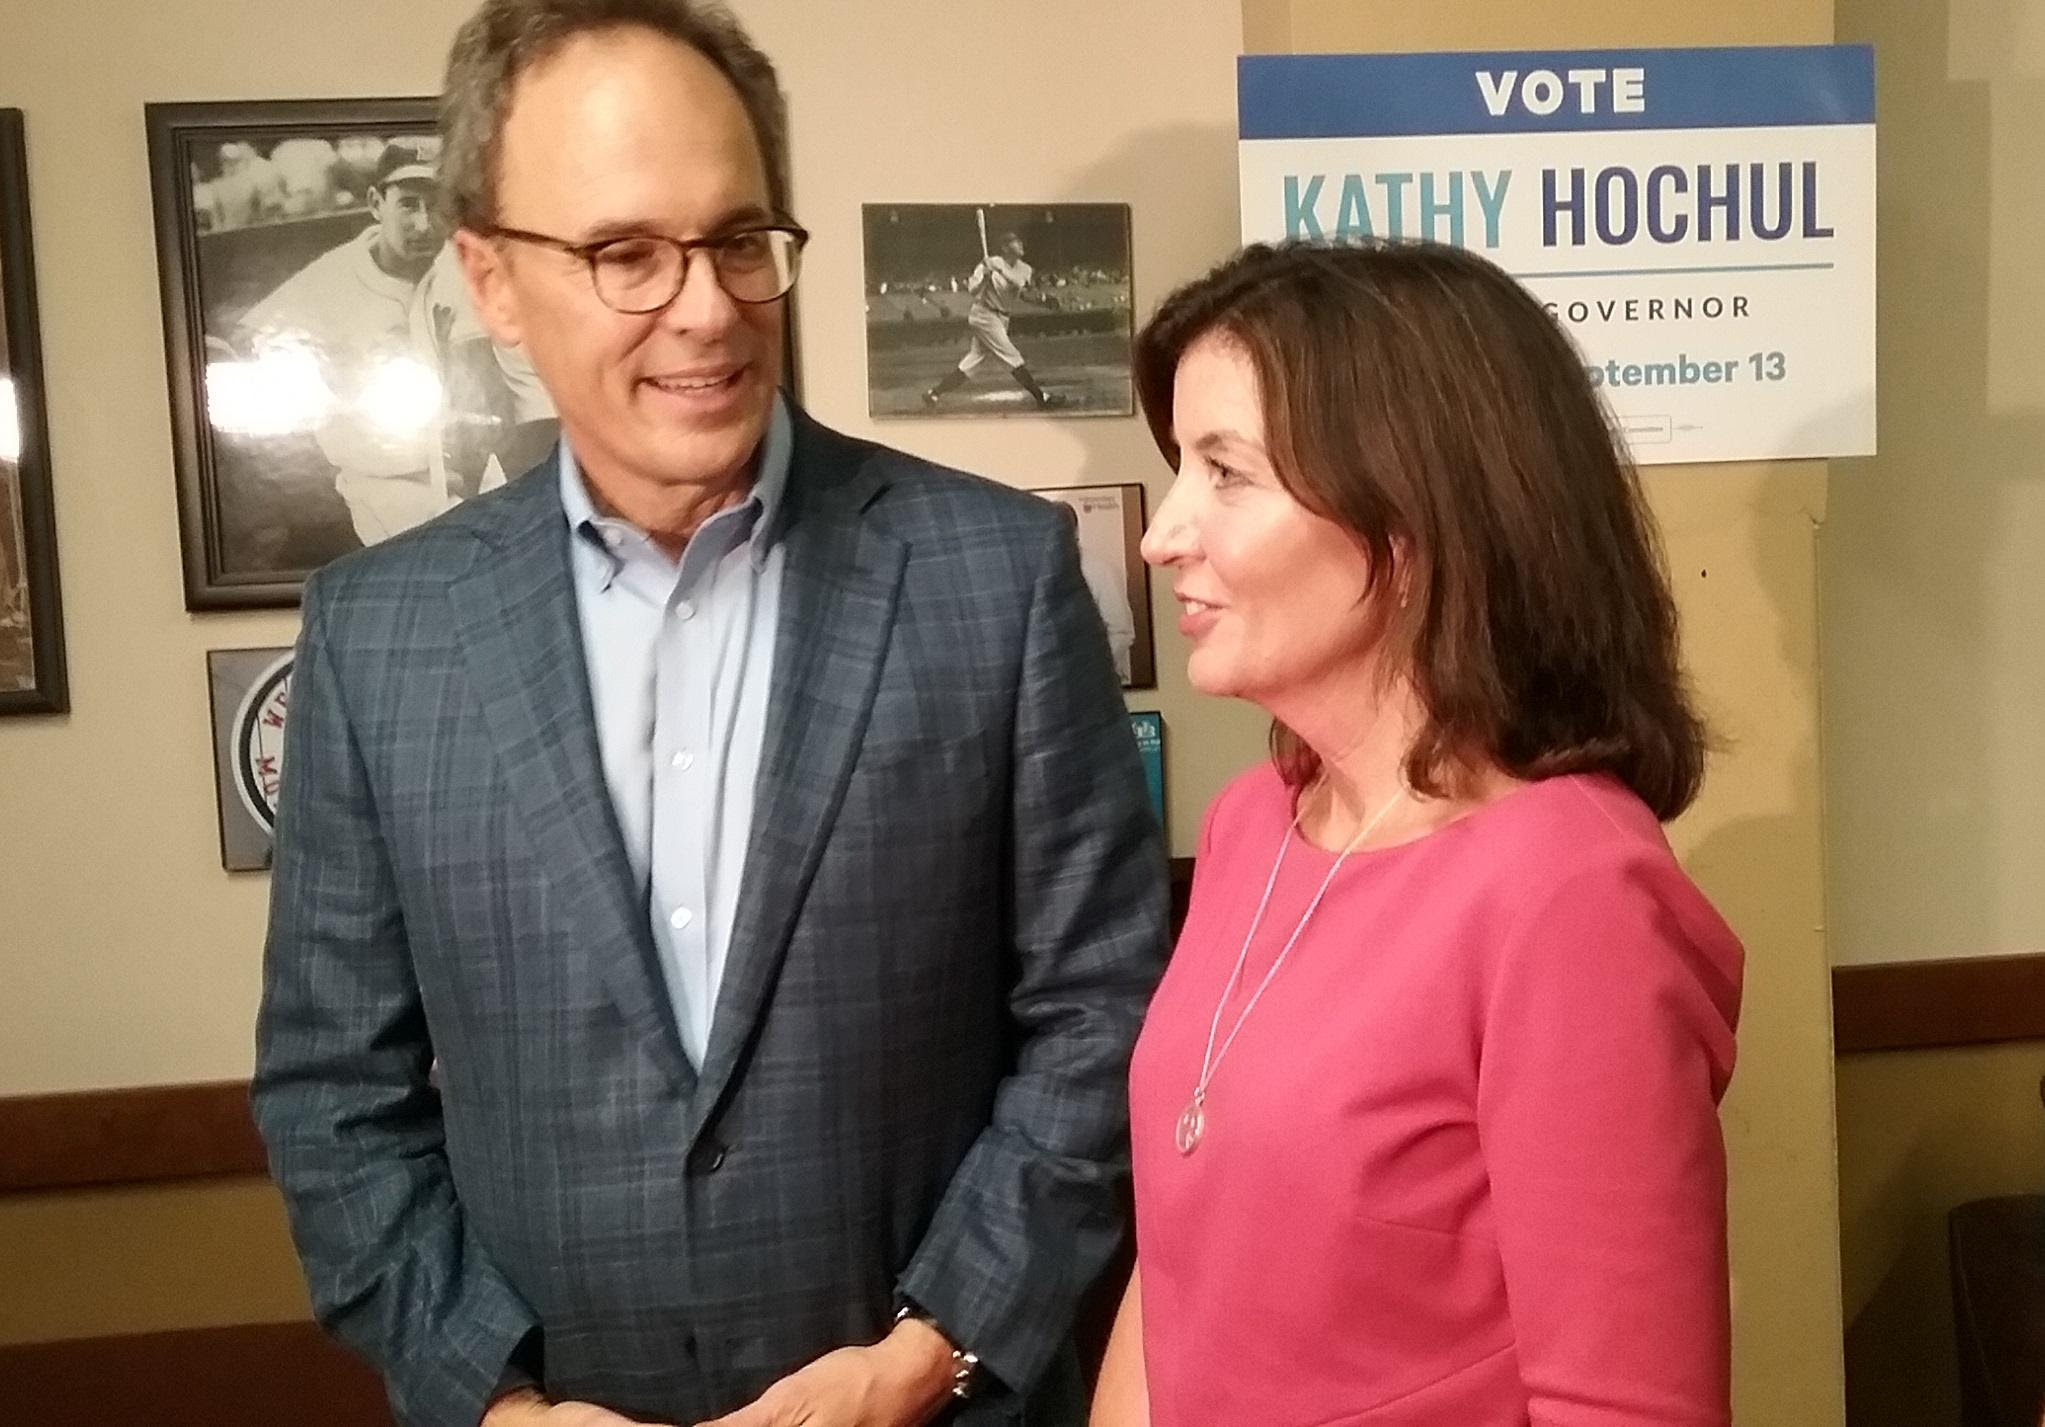 Hochul wins N.Y. lieutenant governor primary   WXXI News